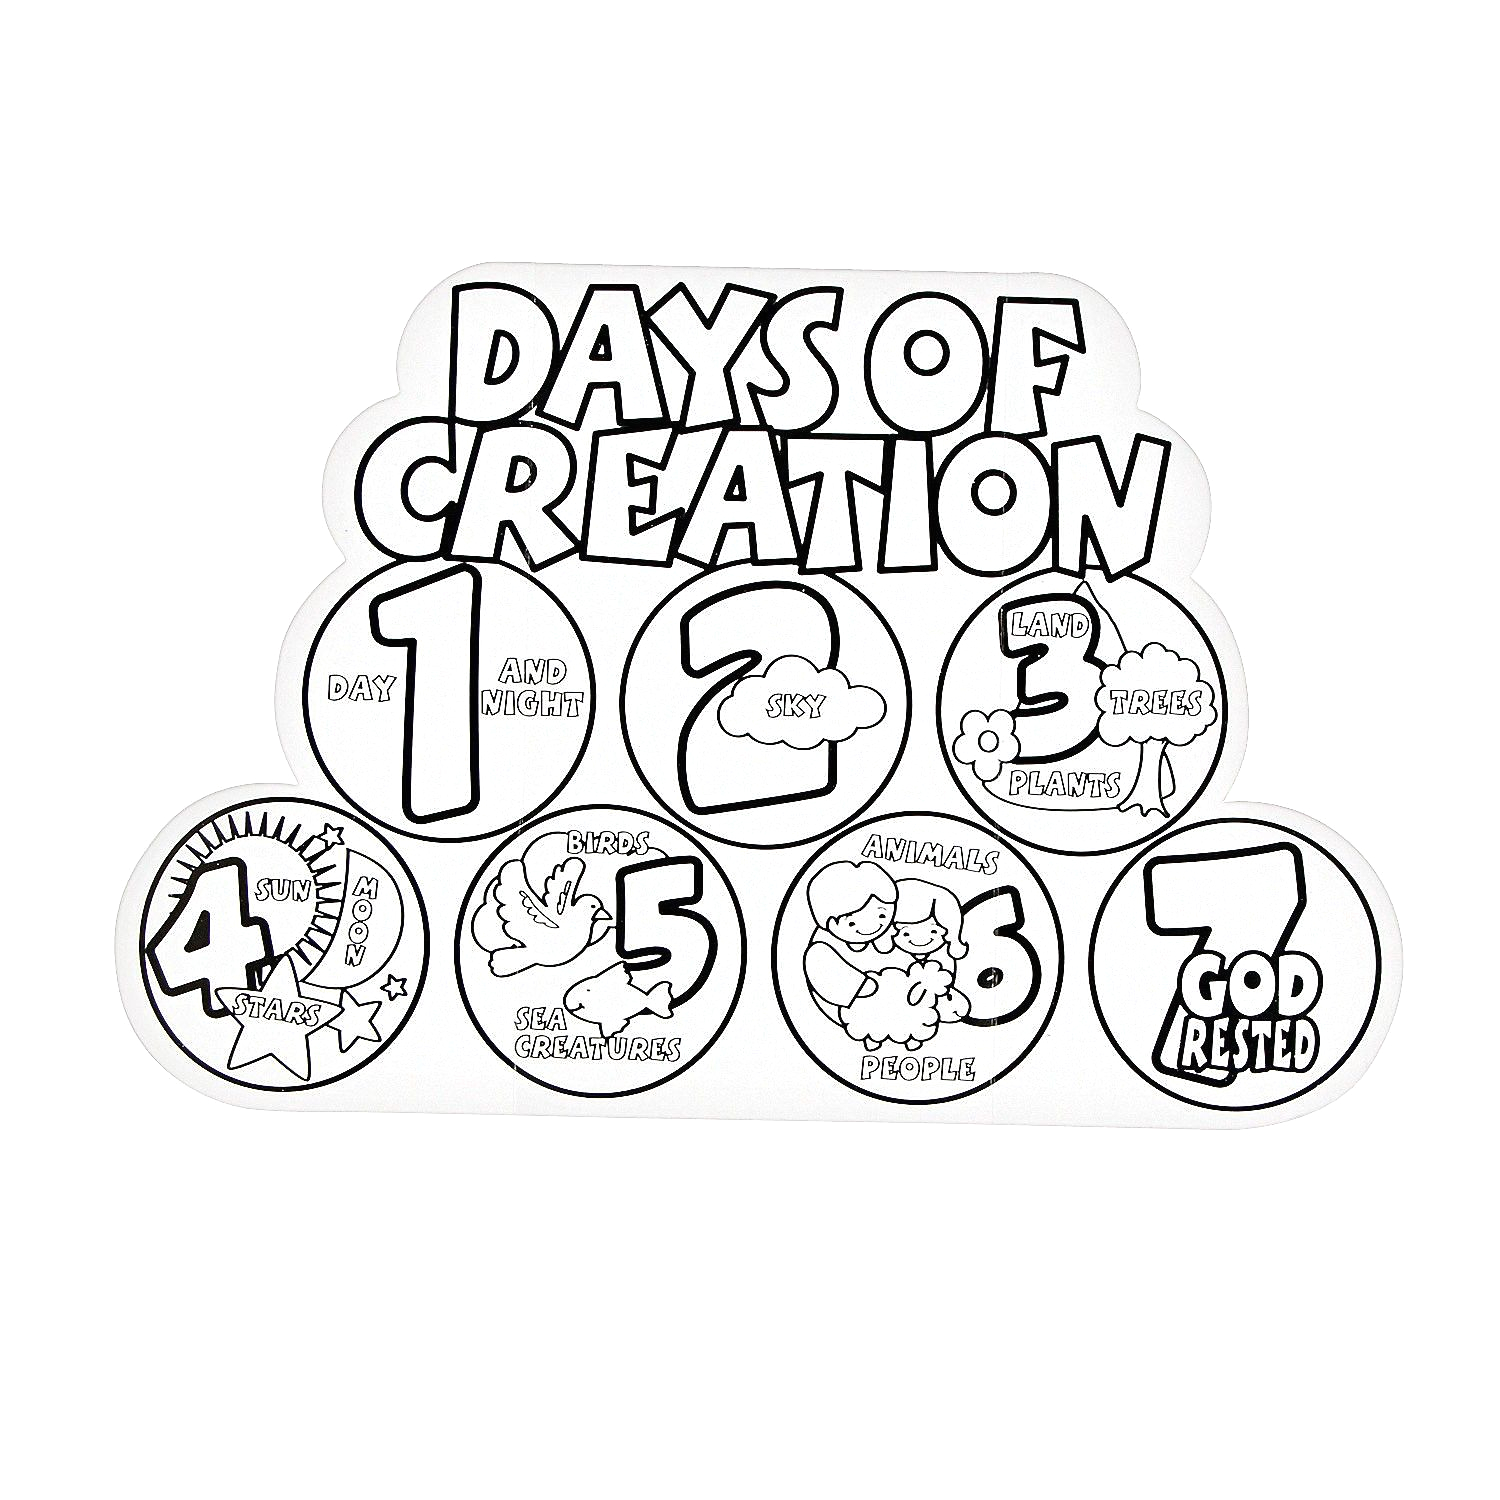 7 Days Of Creation Coloring Pages Free Free Printable Coloring Pages Creation Story Coloring